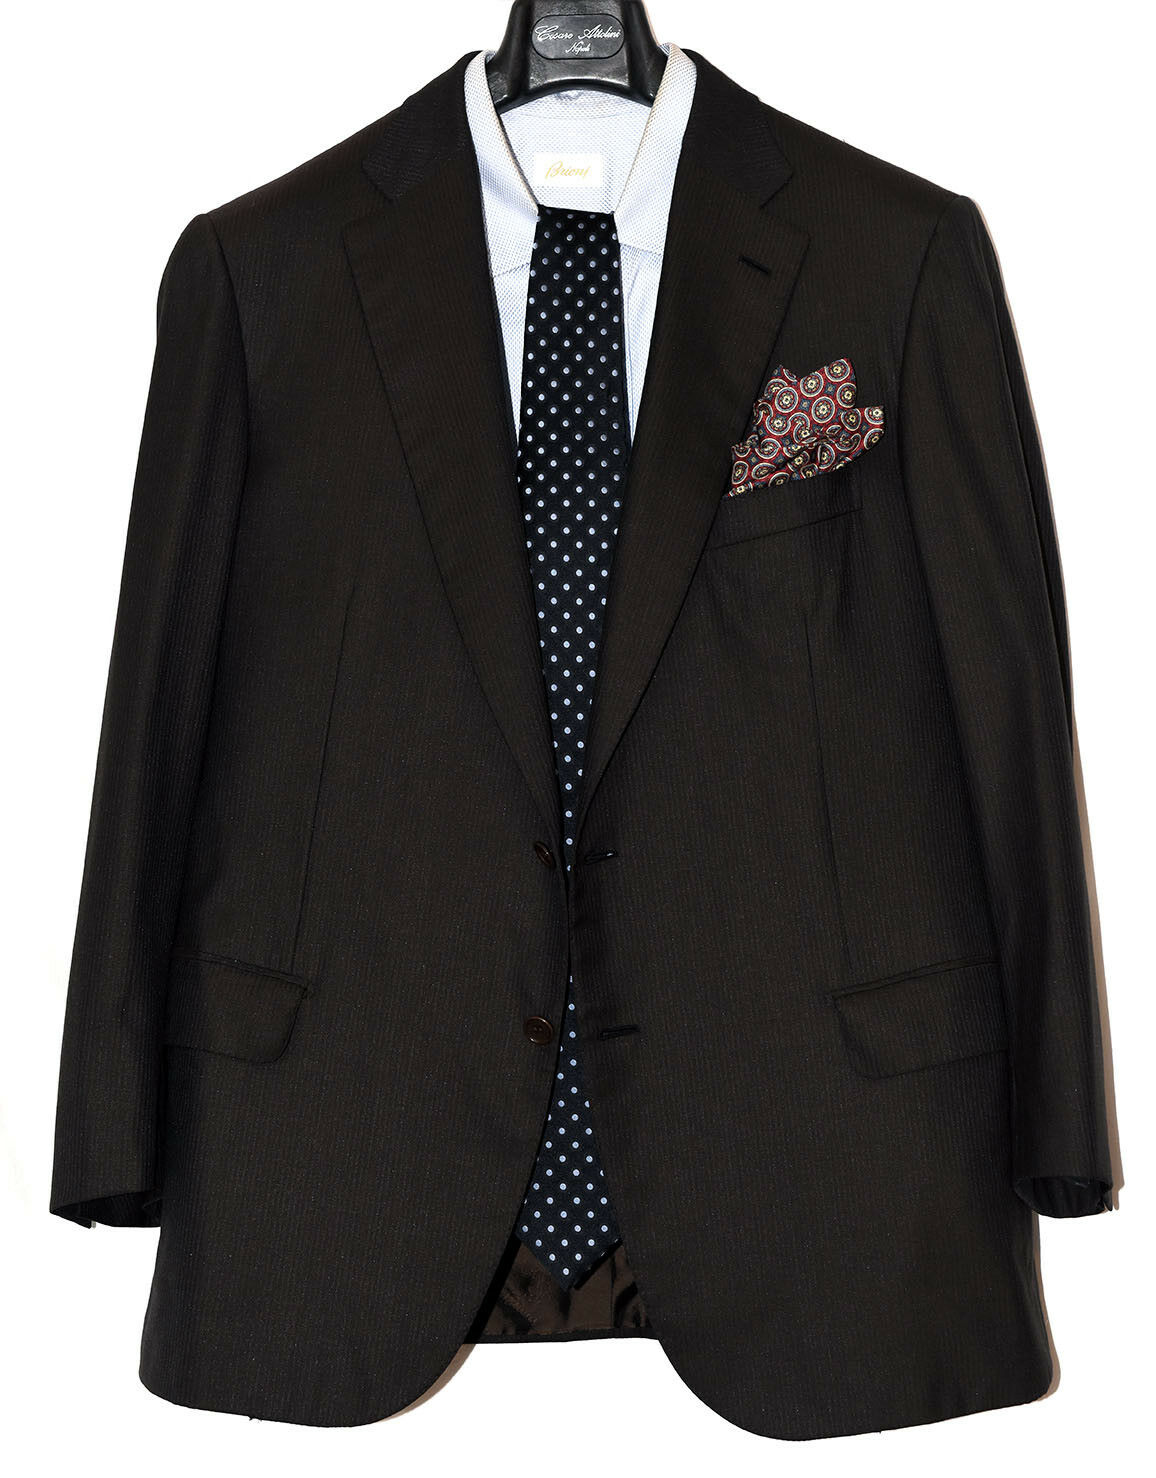 7250 Brioni dark Braun wool silk suit EU 54 / US 44 flat front / functional